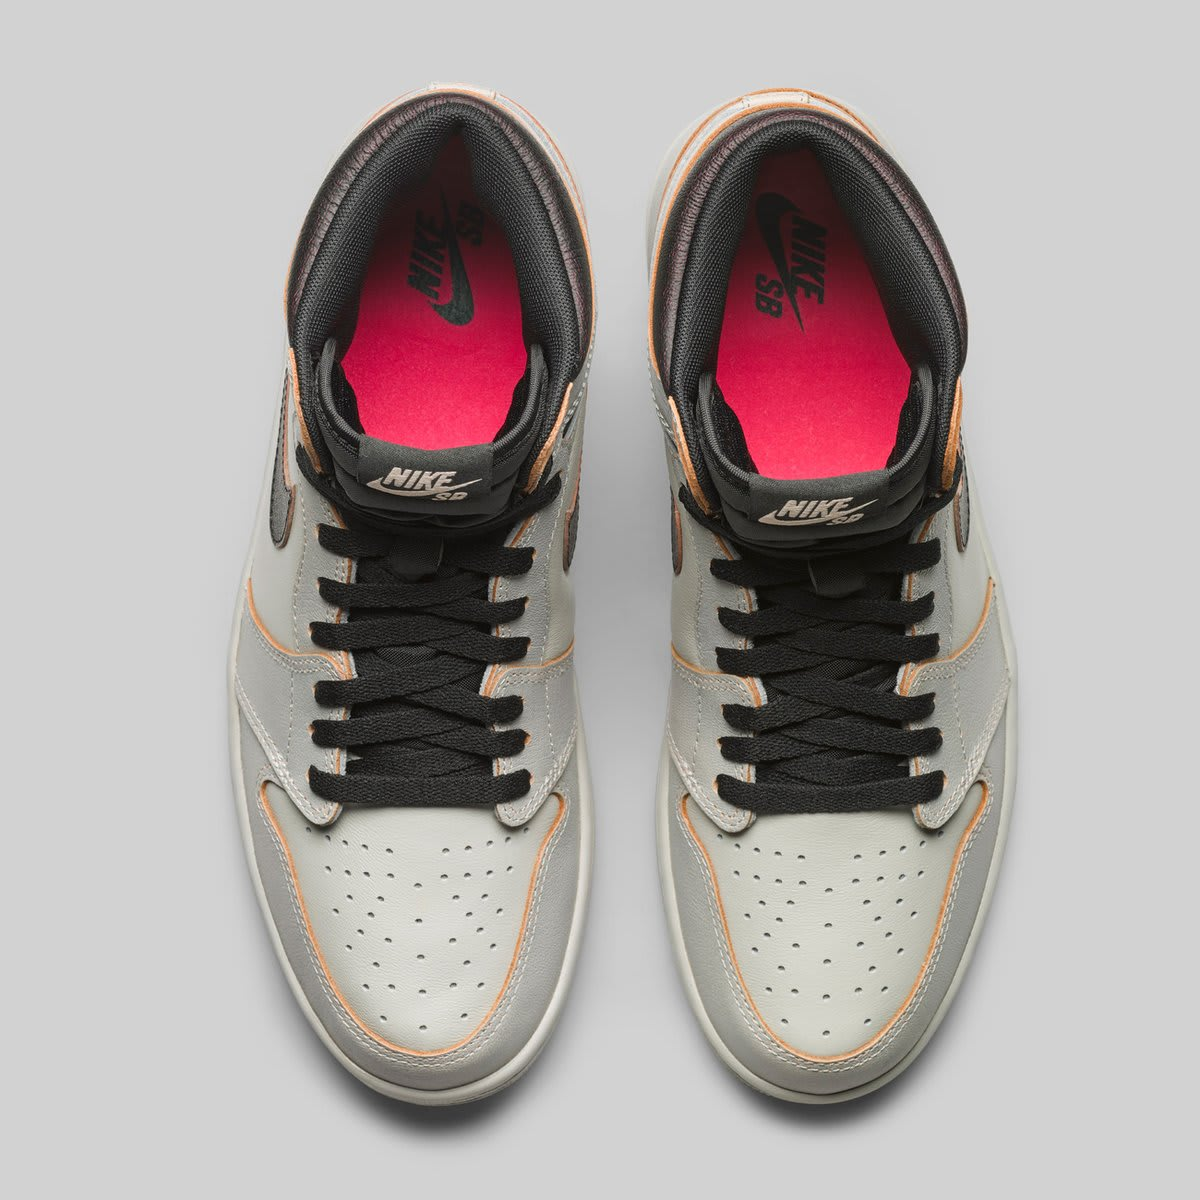 e1658a167d69 Nike SB x Air Jordan 1  Light Bone Crimson Tint-Hyper Pink-Black ...